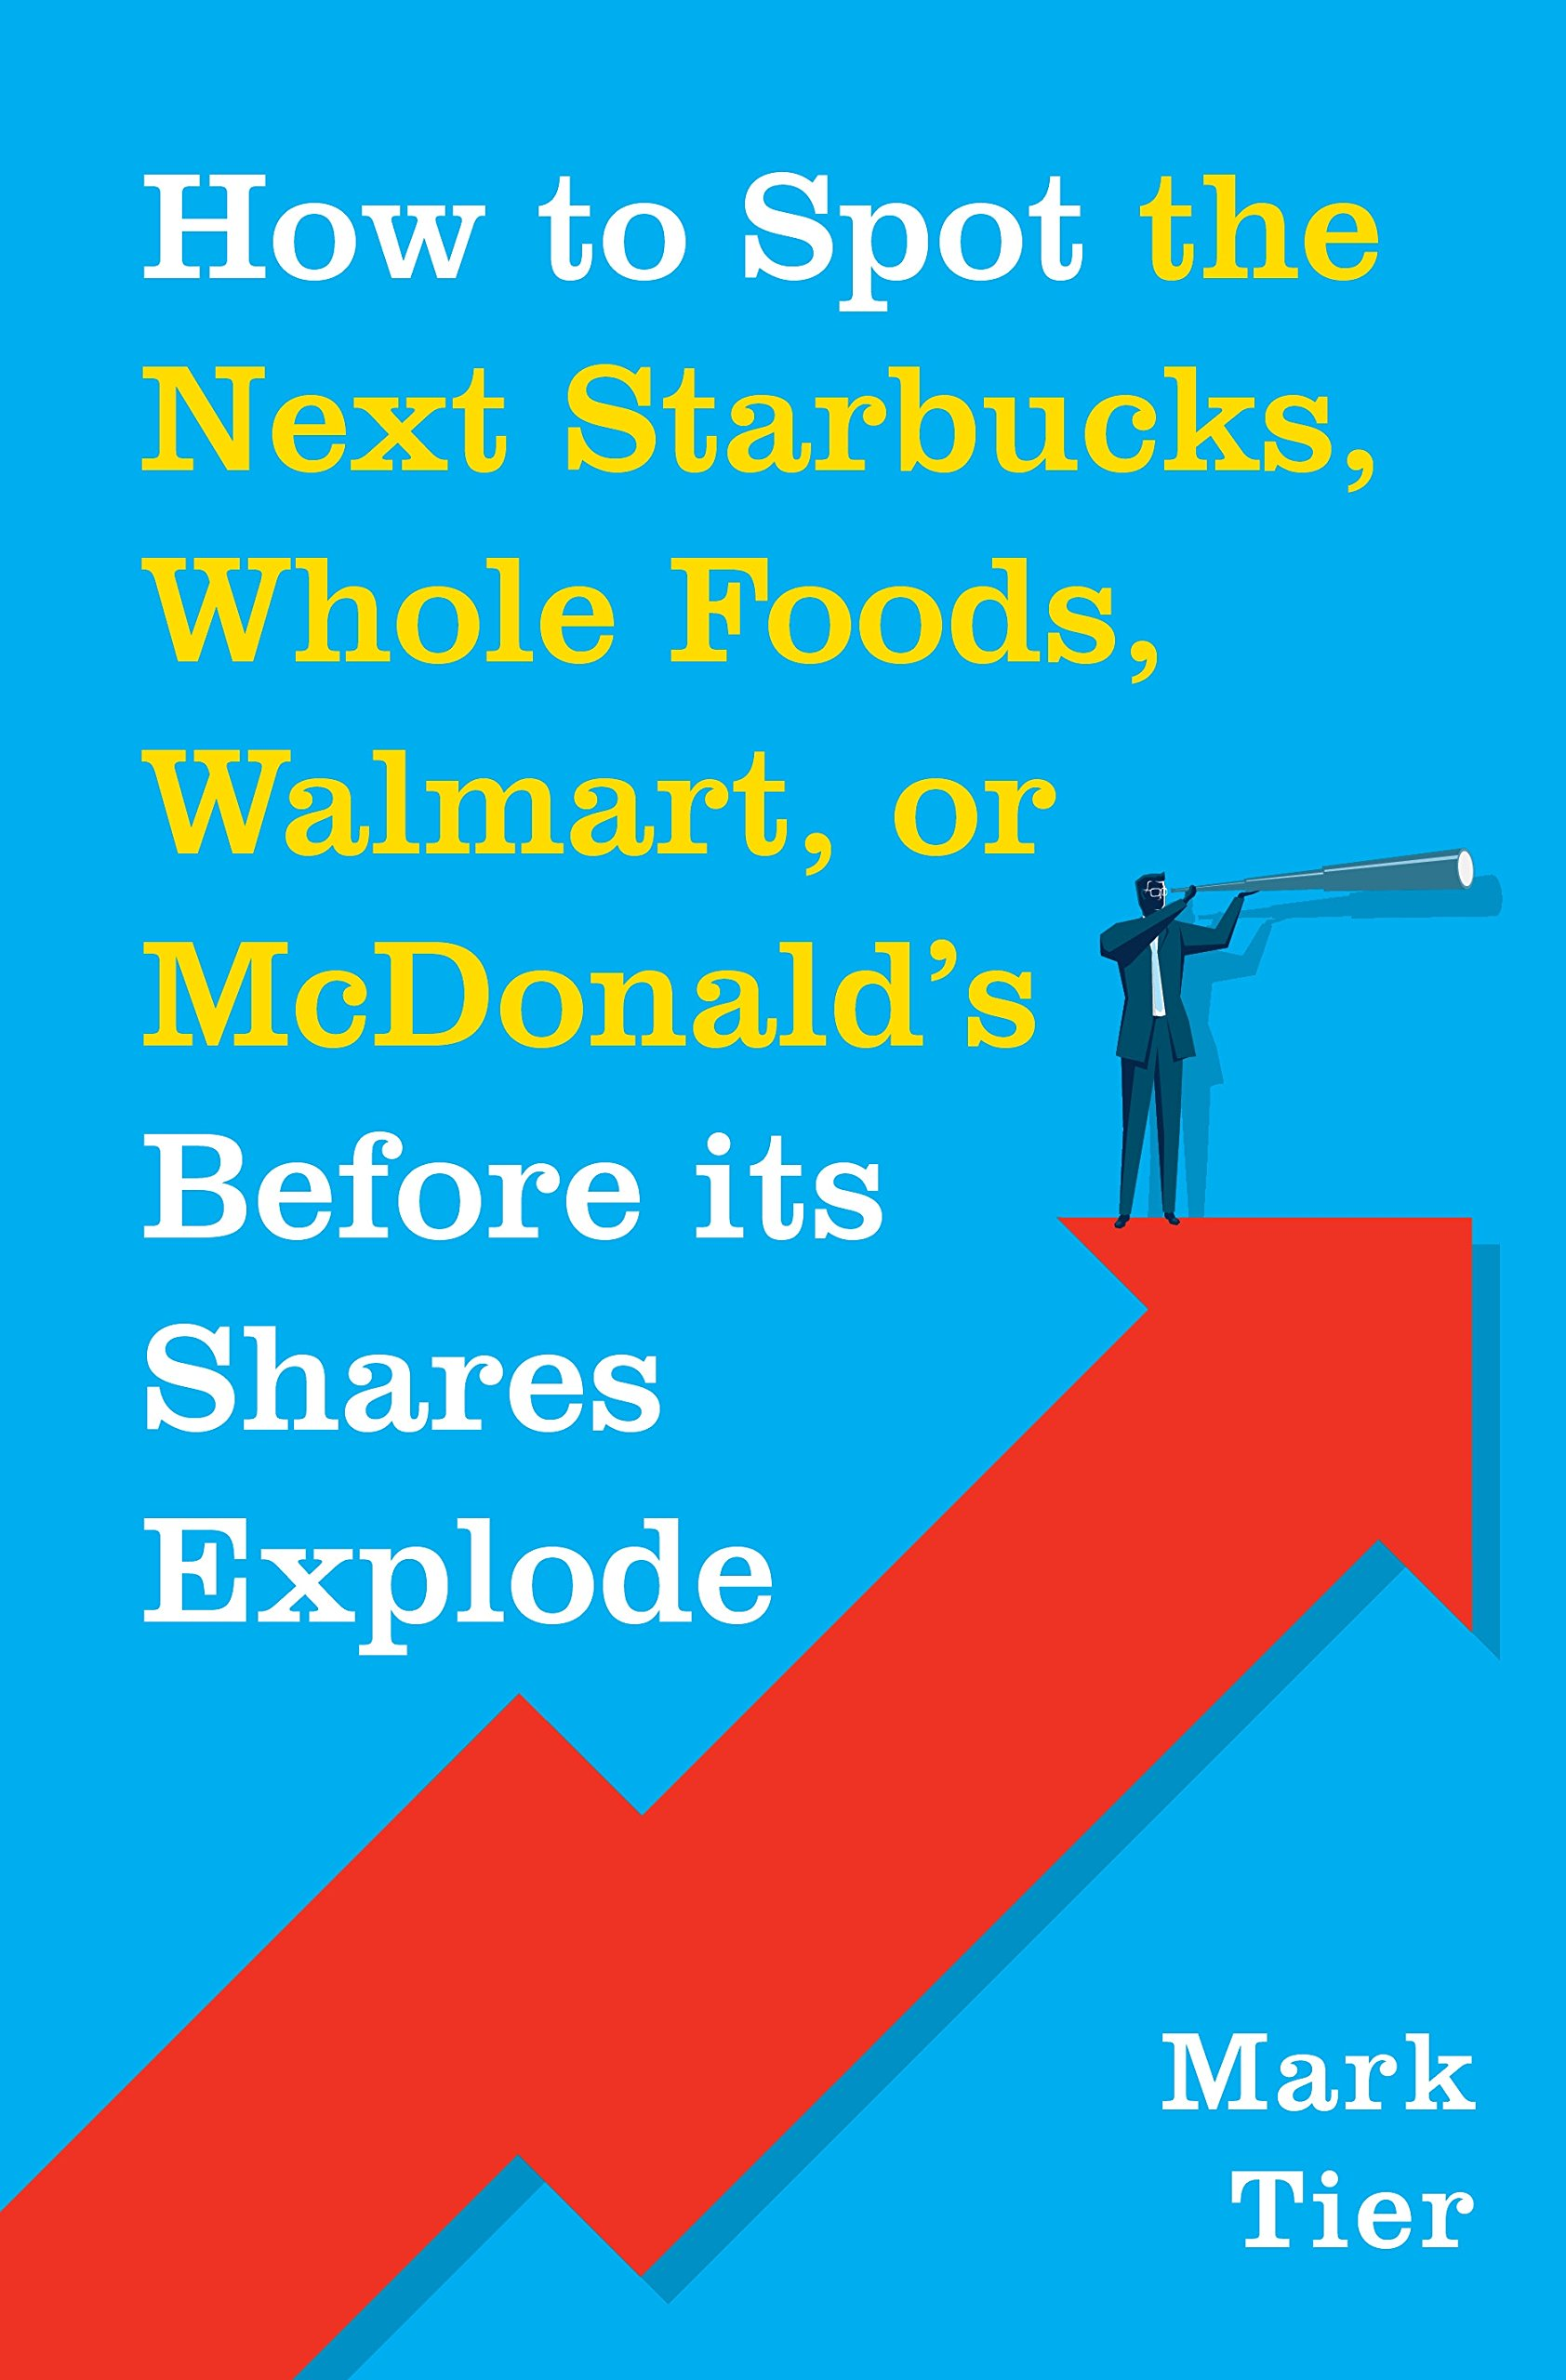 How to Spot the Next Starbucks, Whole Foods, Walmart, or Mcdonald's Before Its Shares Explode ebook